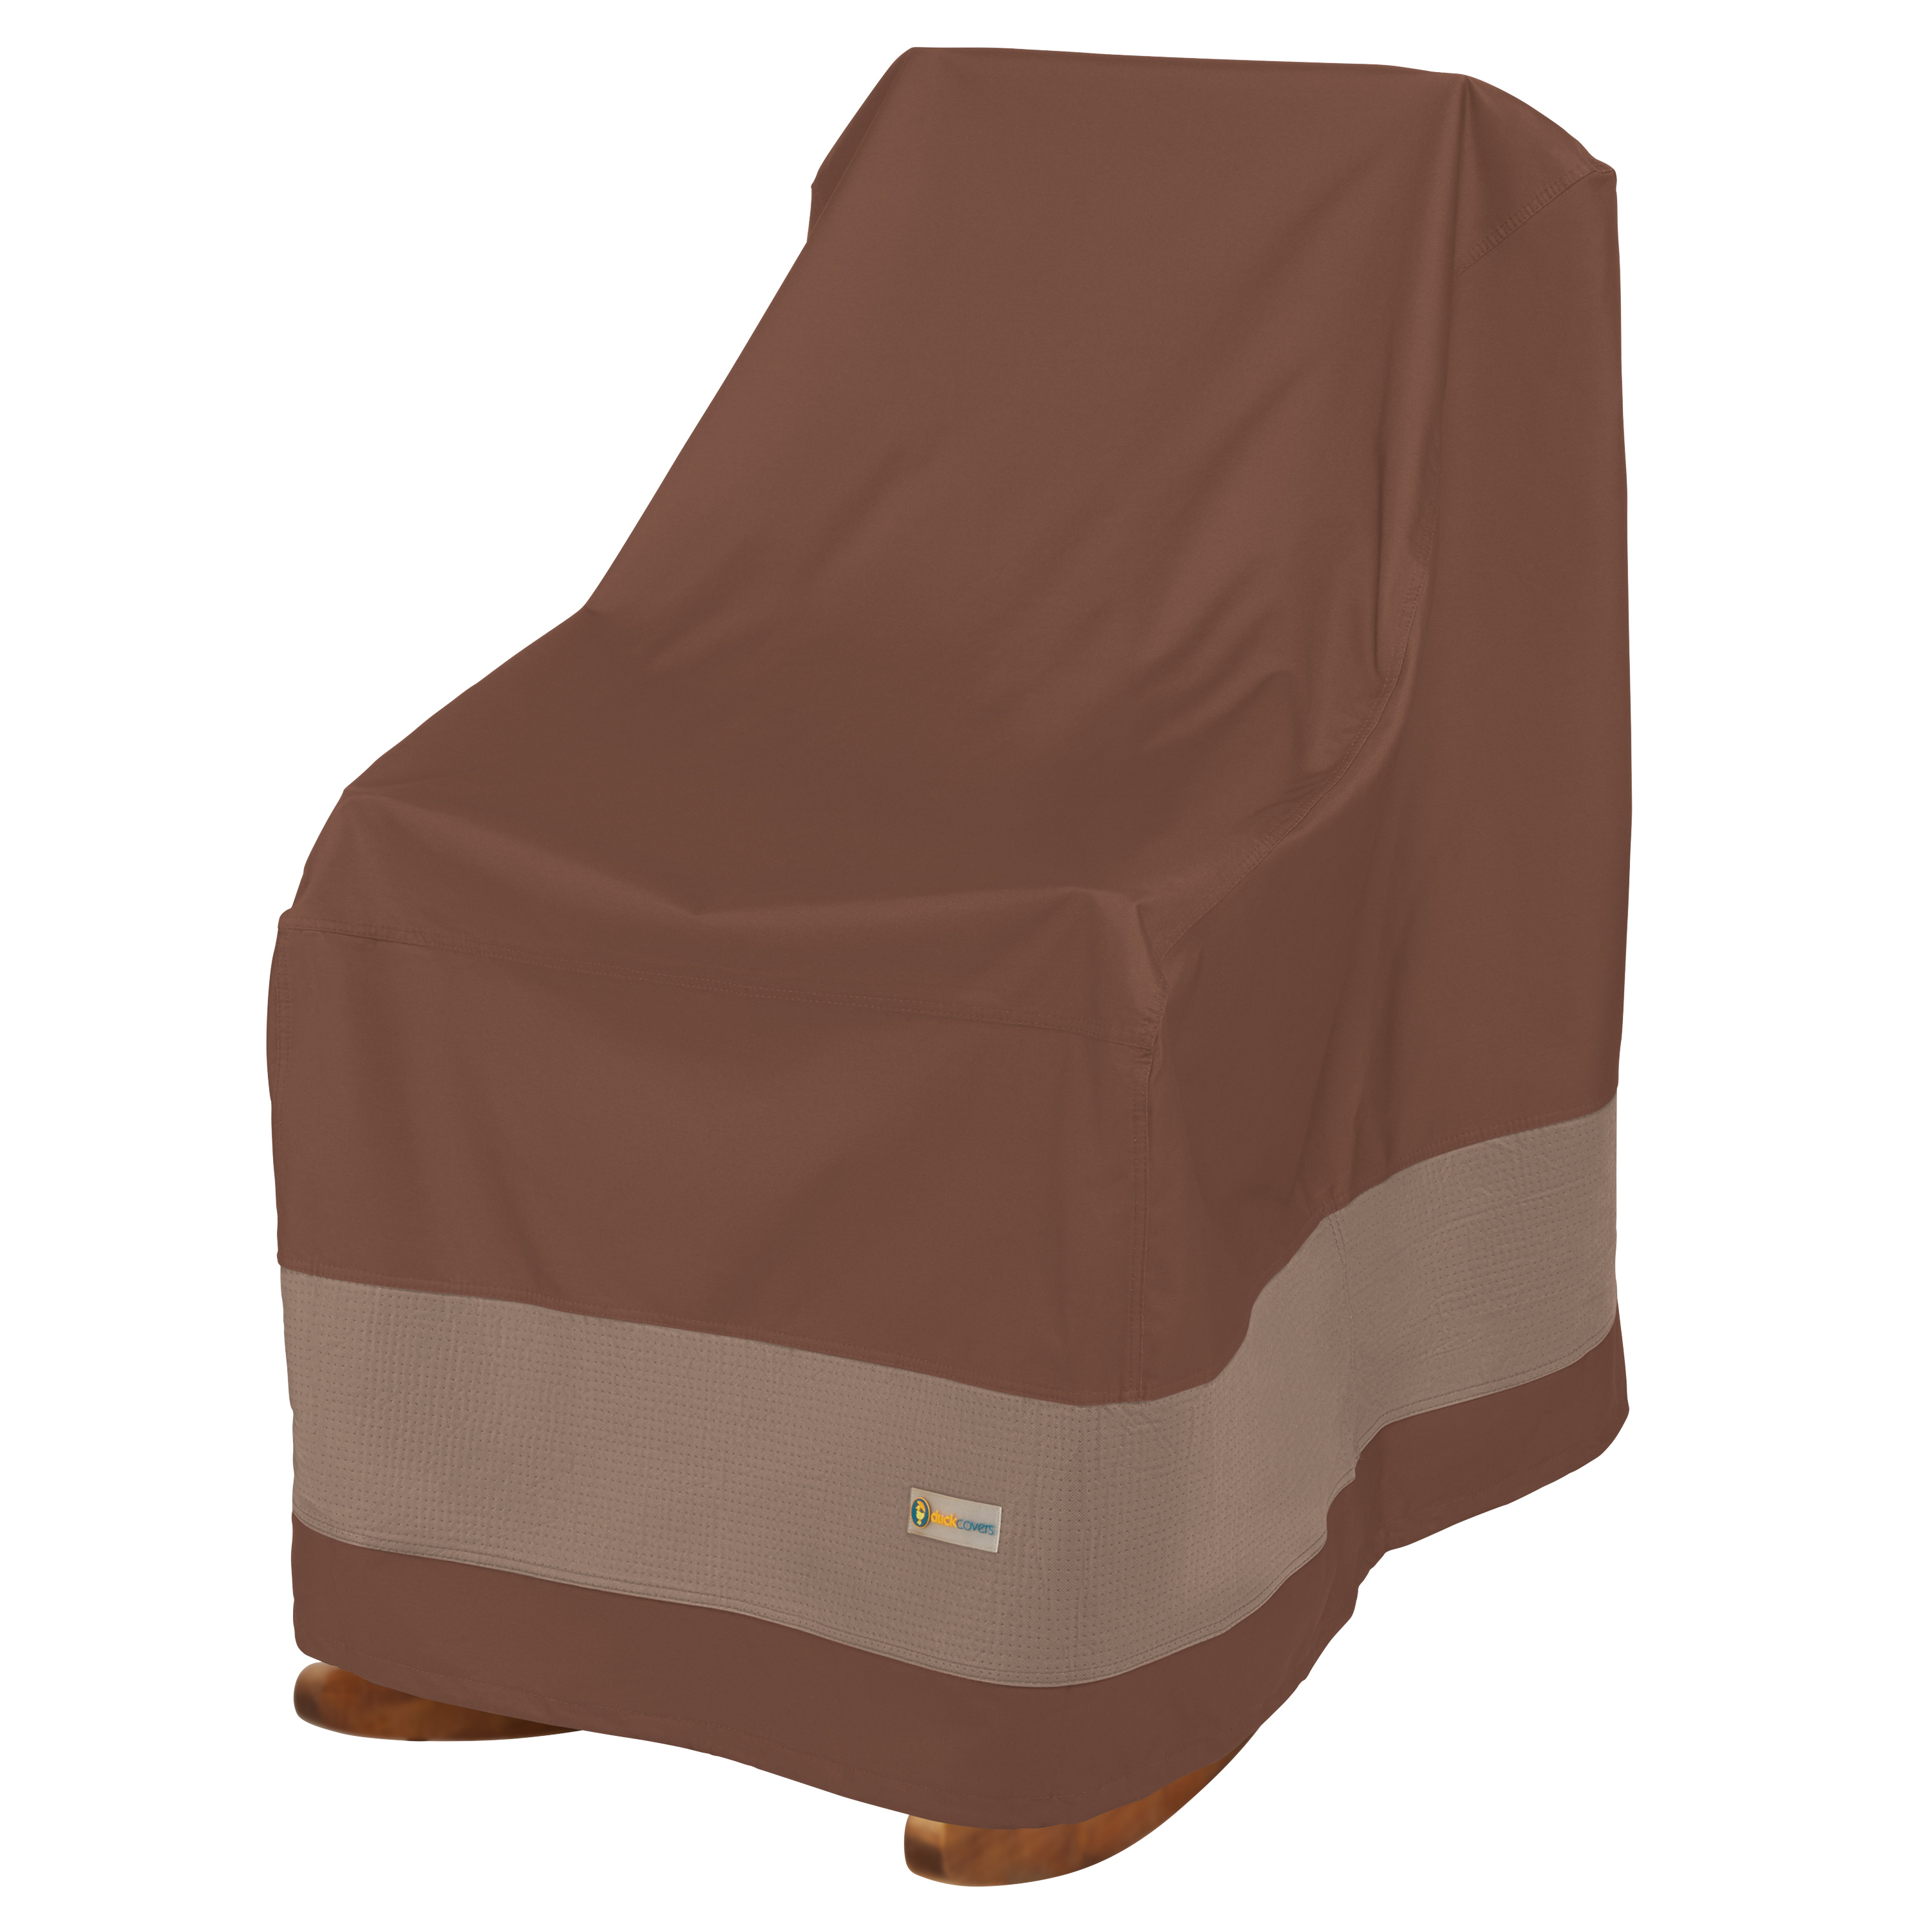 Duck Covers Ultimate Rocking Chair Cover 28in W Ebay